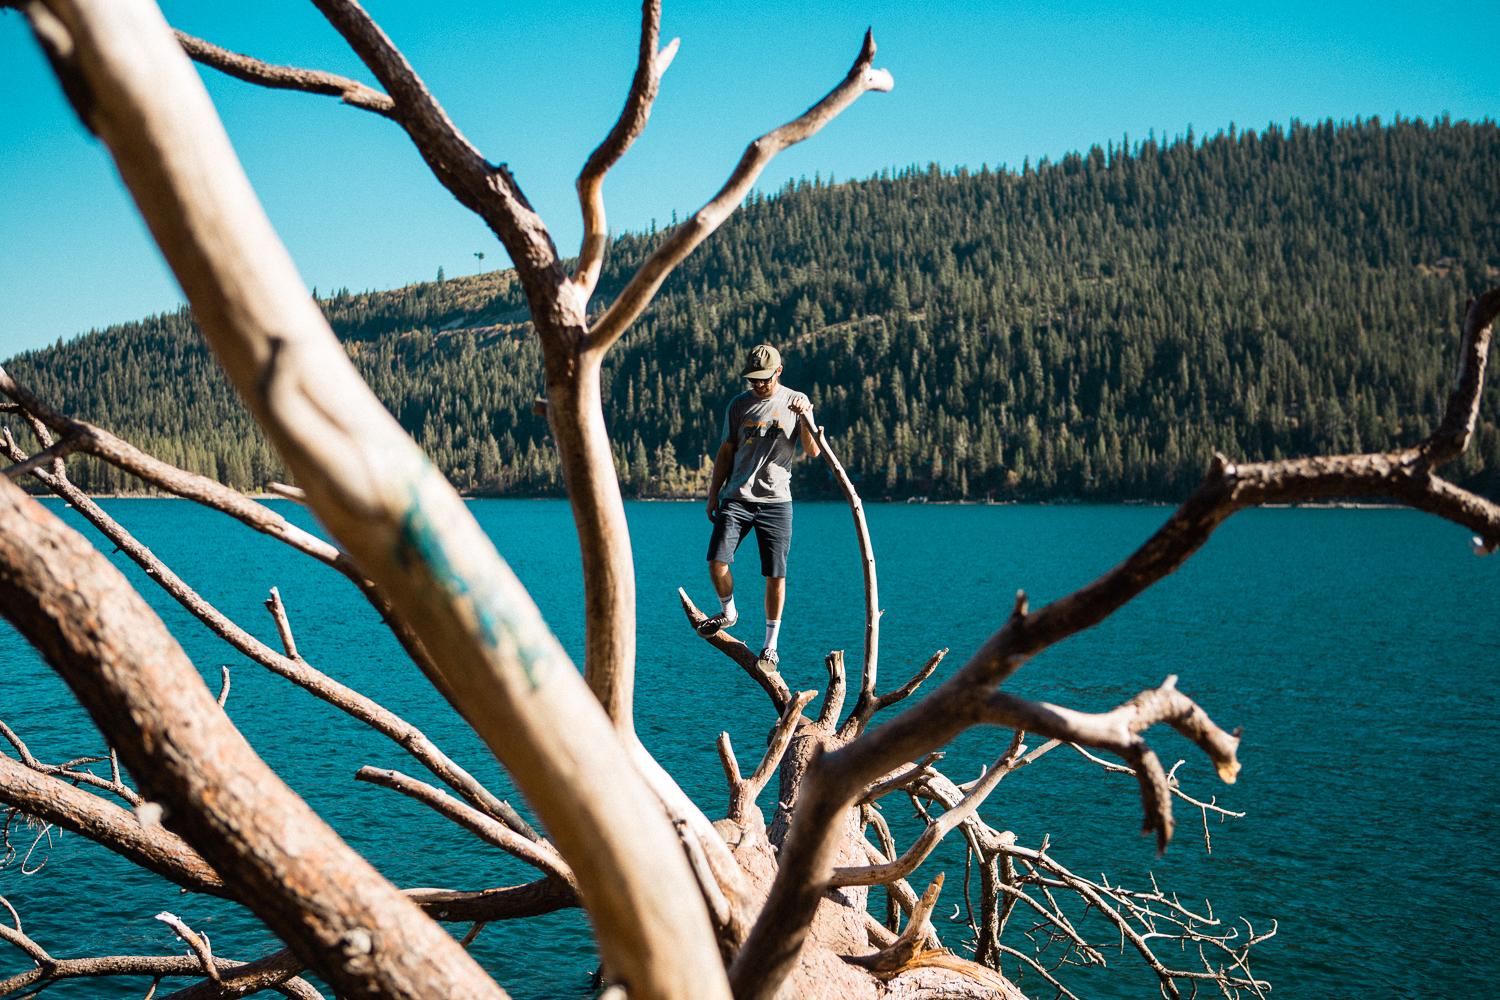 I convinced my good buddy  Tyler to go on a couple adventures with me. This was a fallen tree into Donner Lake that I spotted while cycling the day before. I told him they would make great Tinder profile pics.